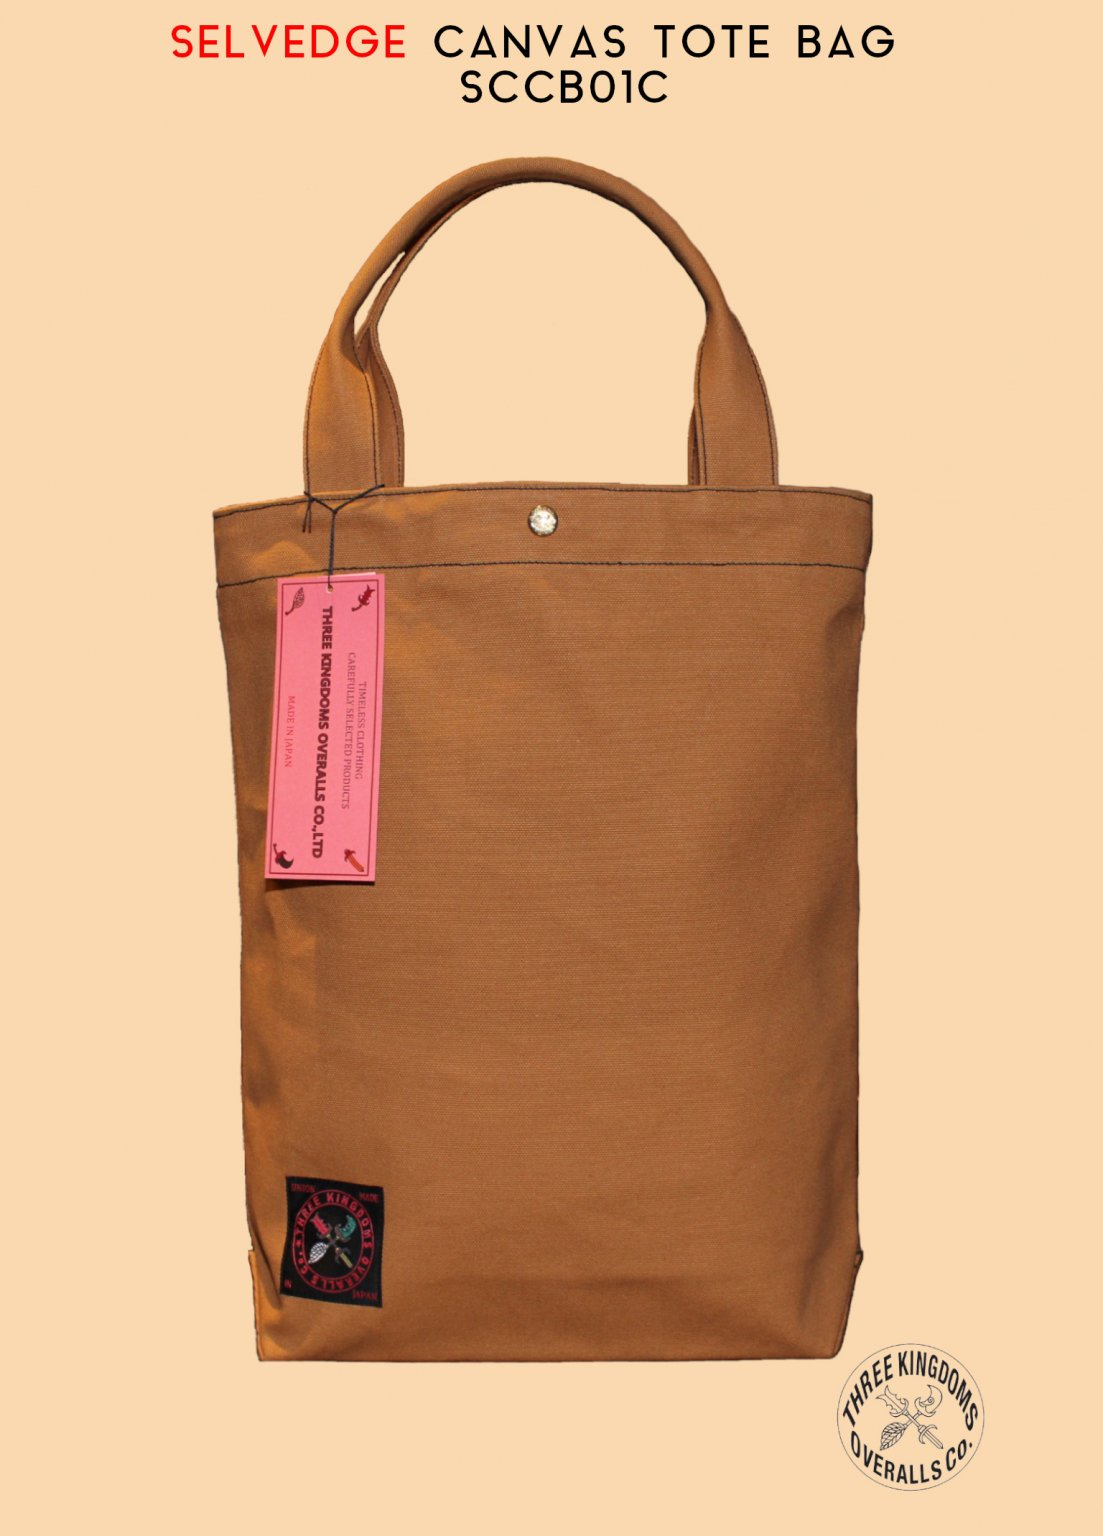 SCCB01C SELVEDGE COTTON CANVAS TOTE BAG